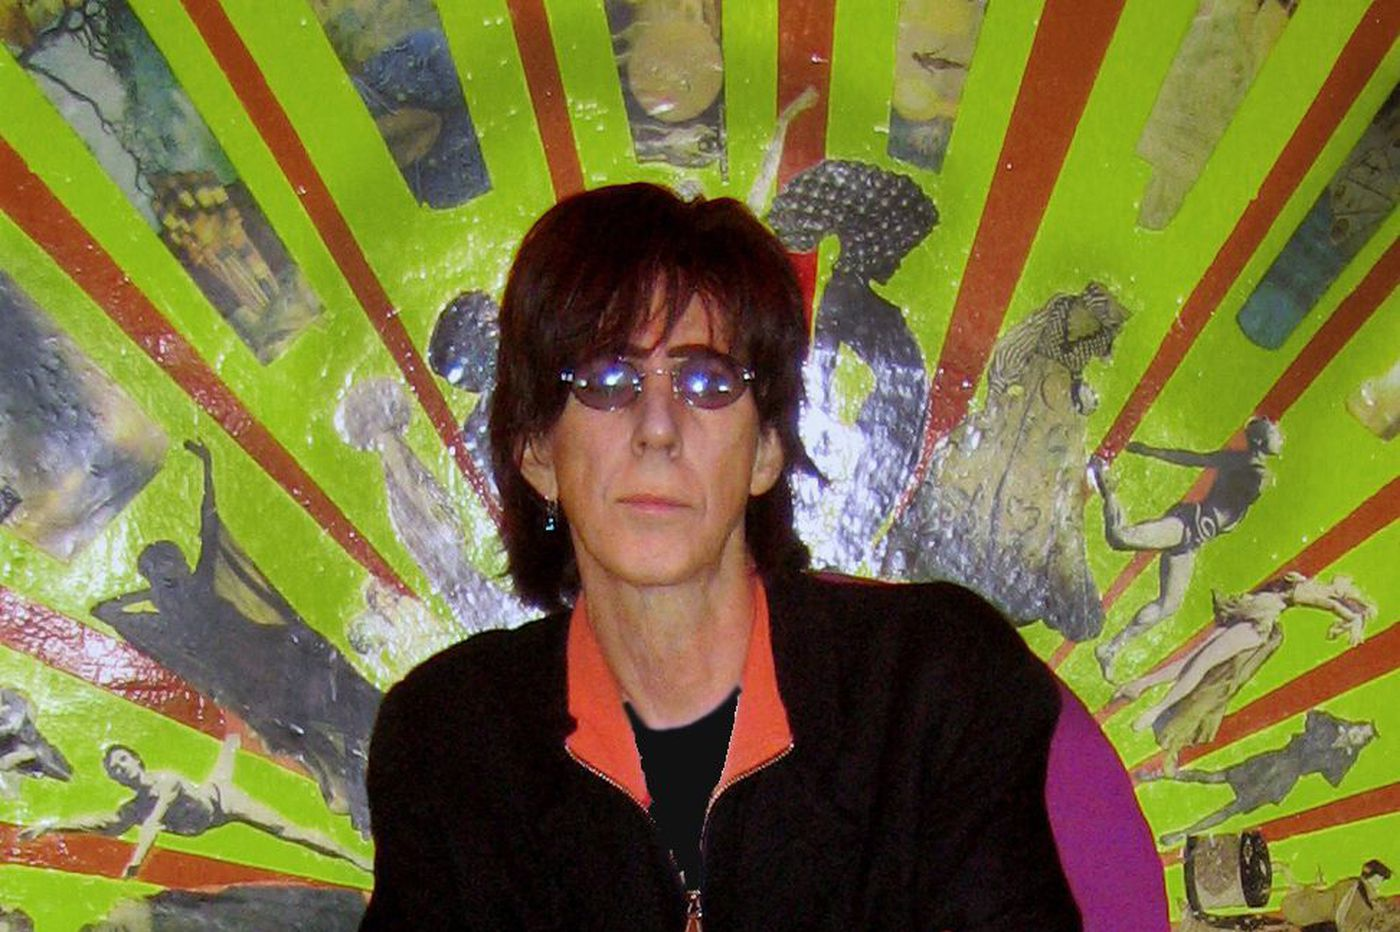 He's a rock star, he's a painter: Ric Ocasek of The Cars brings his visual art to King of Prussia